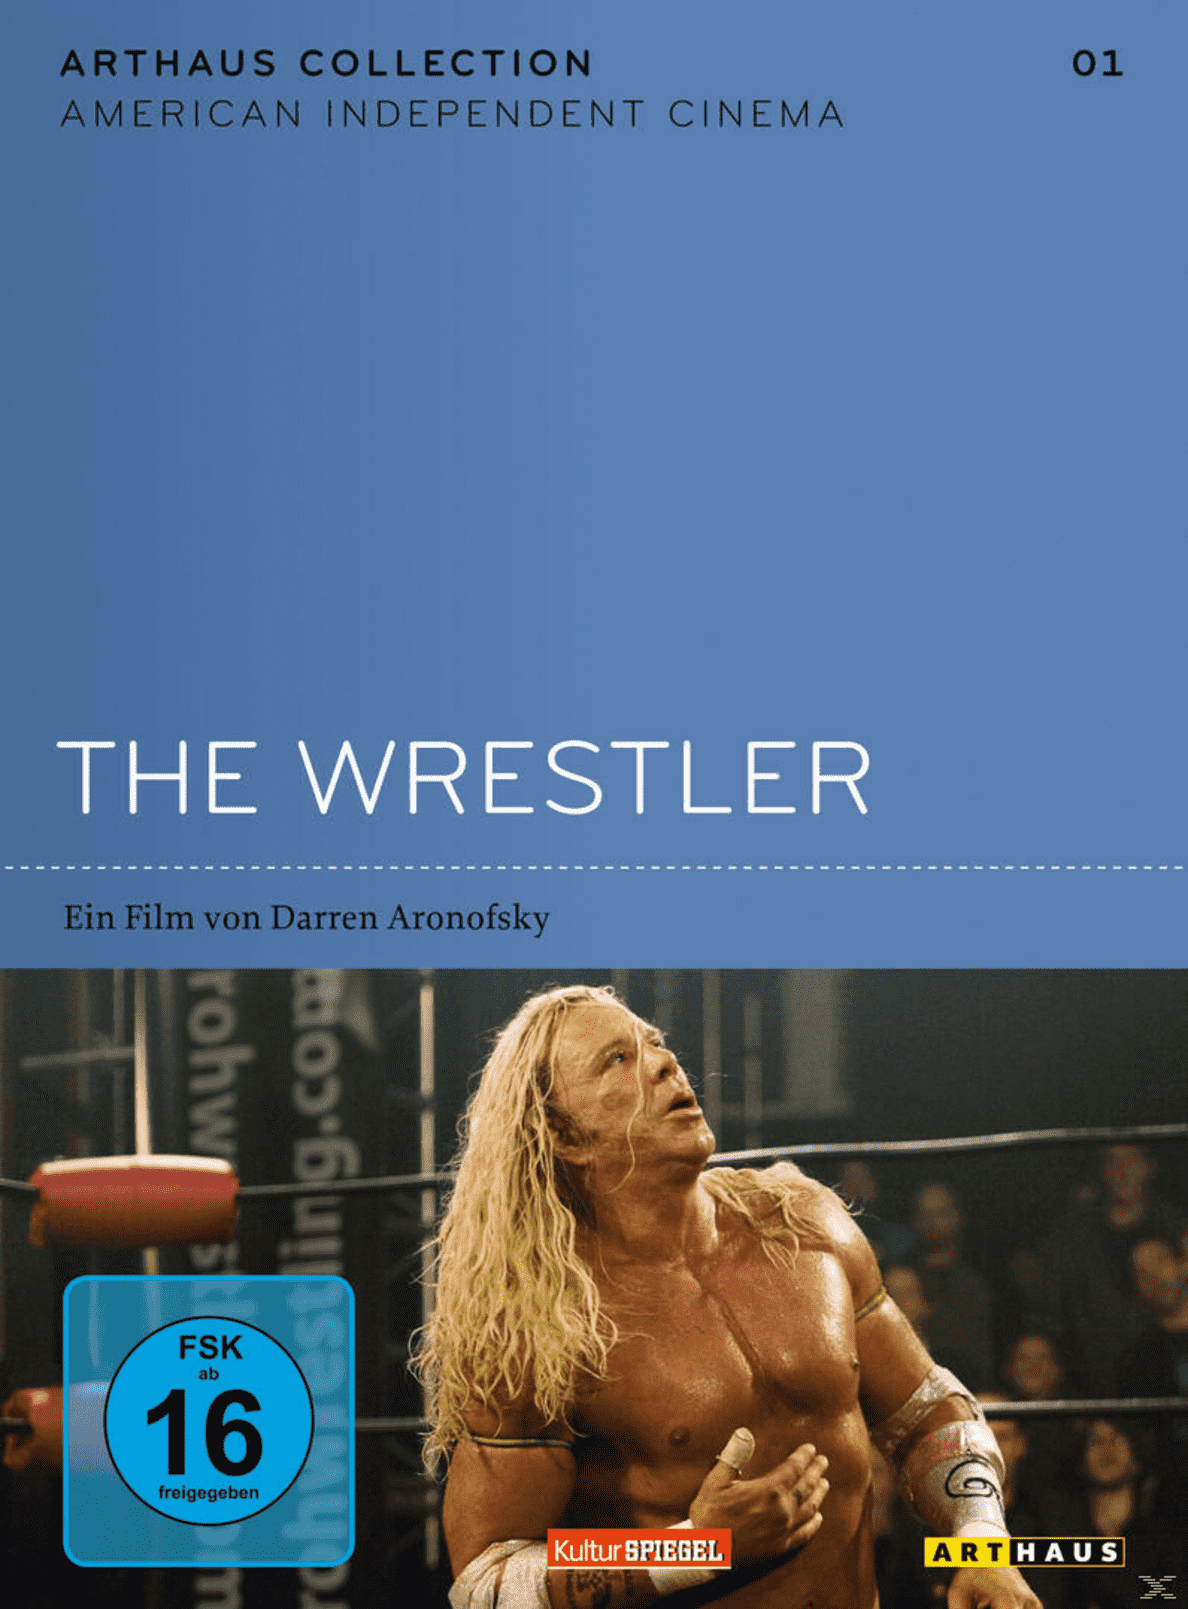 The Wrestler / Arthaus Collection American Independent Cinema auf DVD